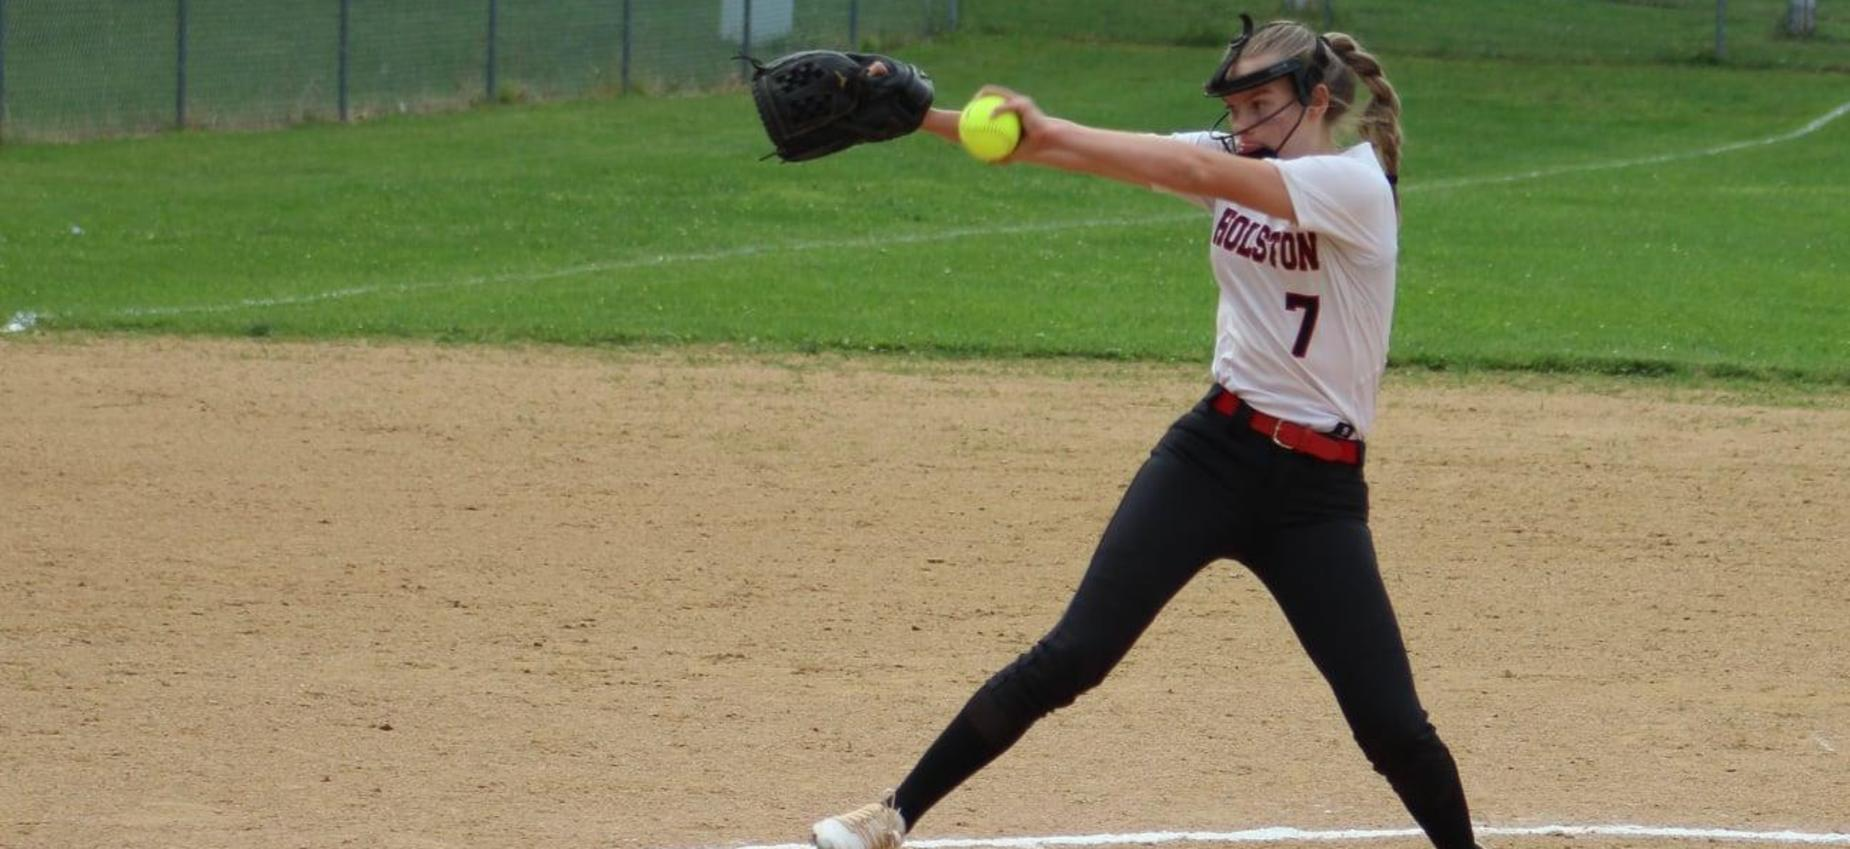 A softball player pitches the ball.